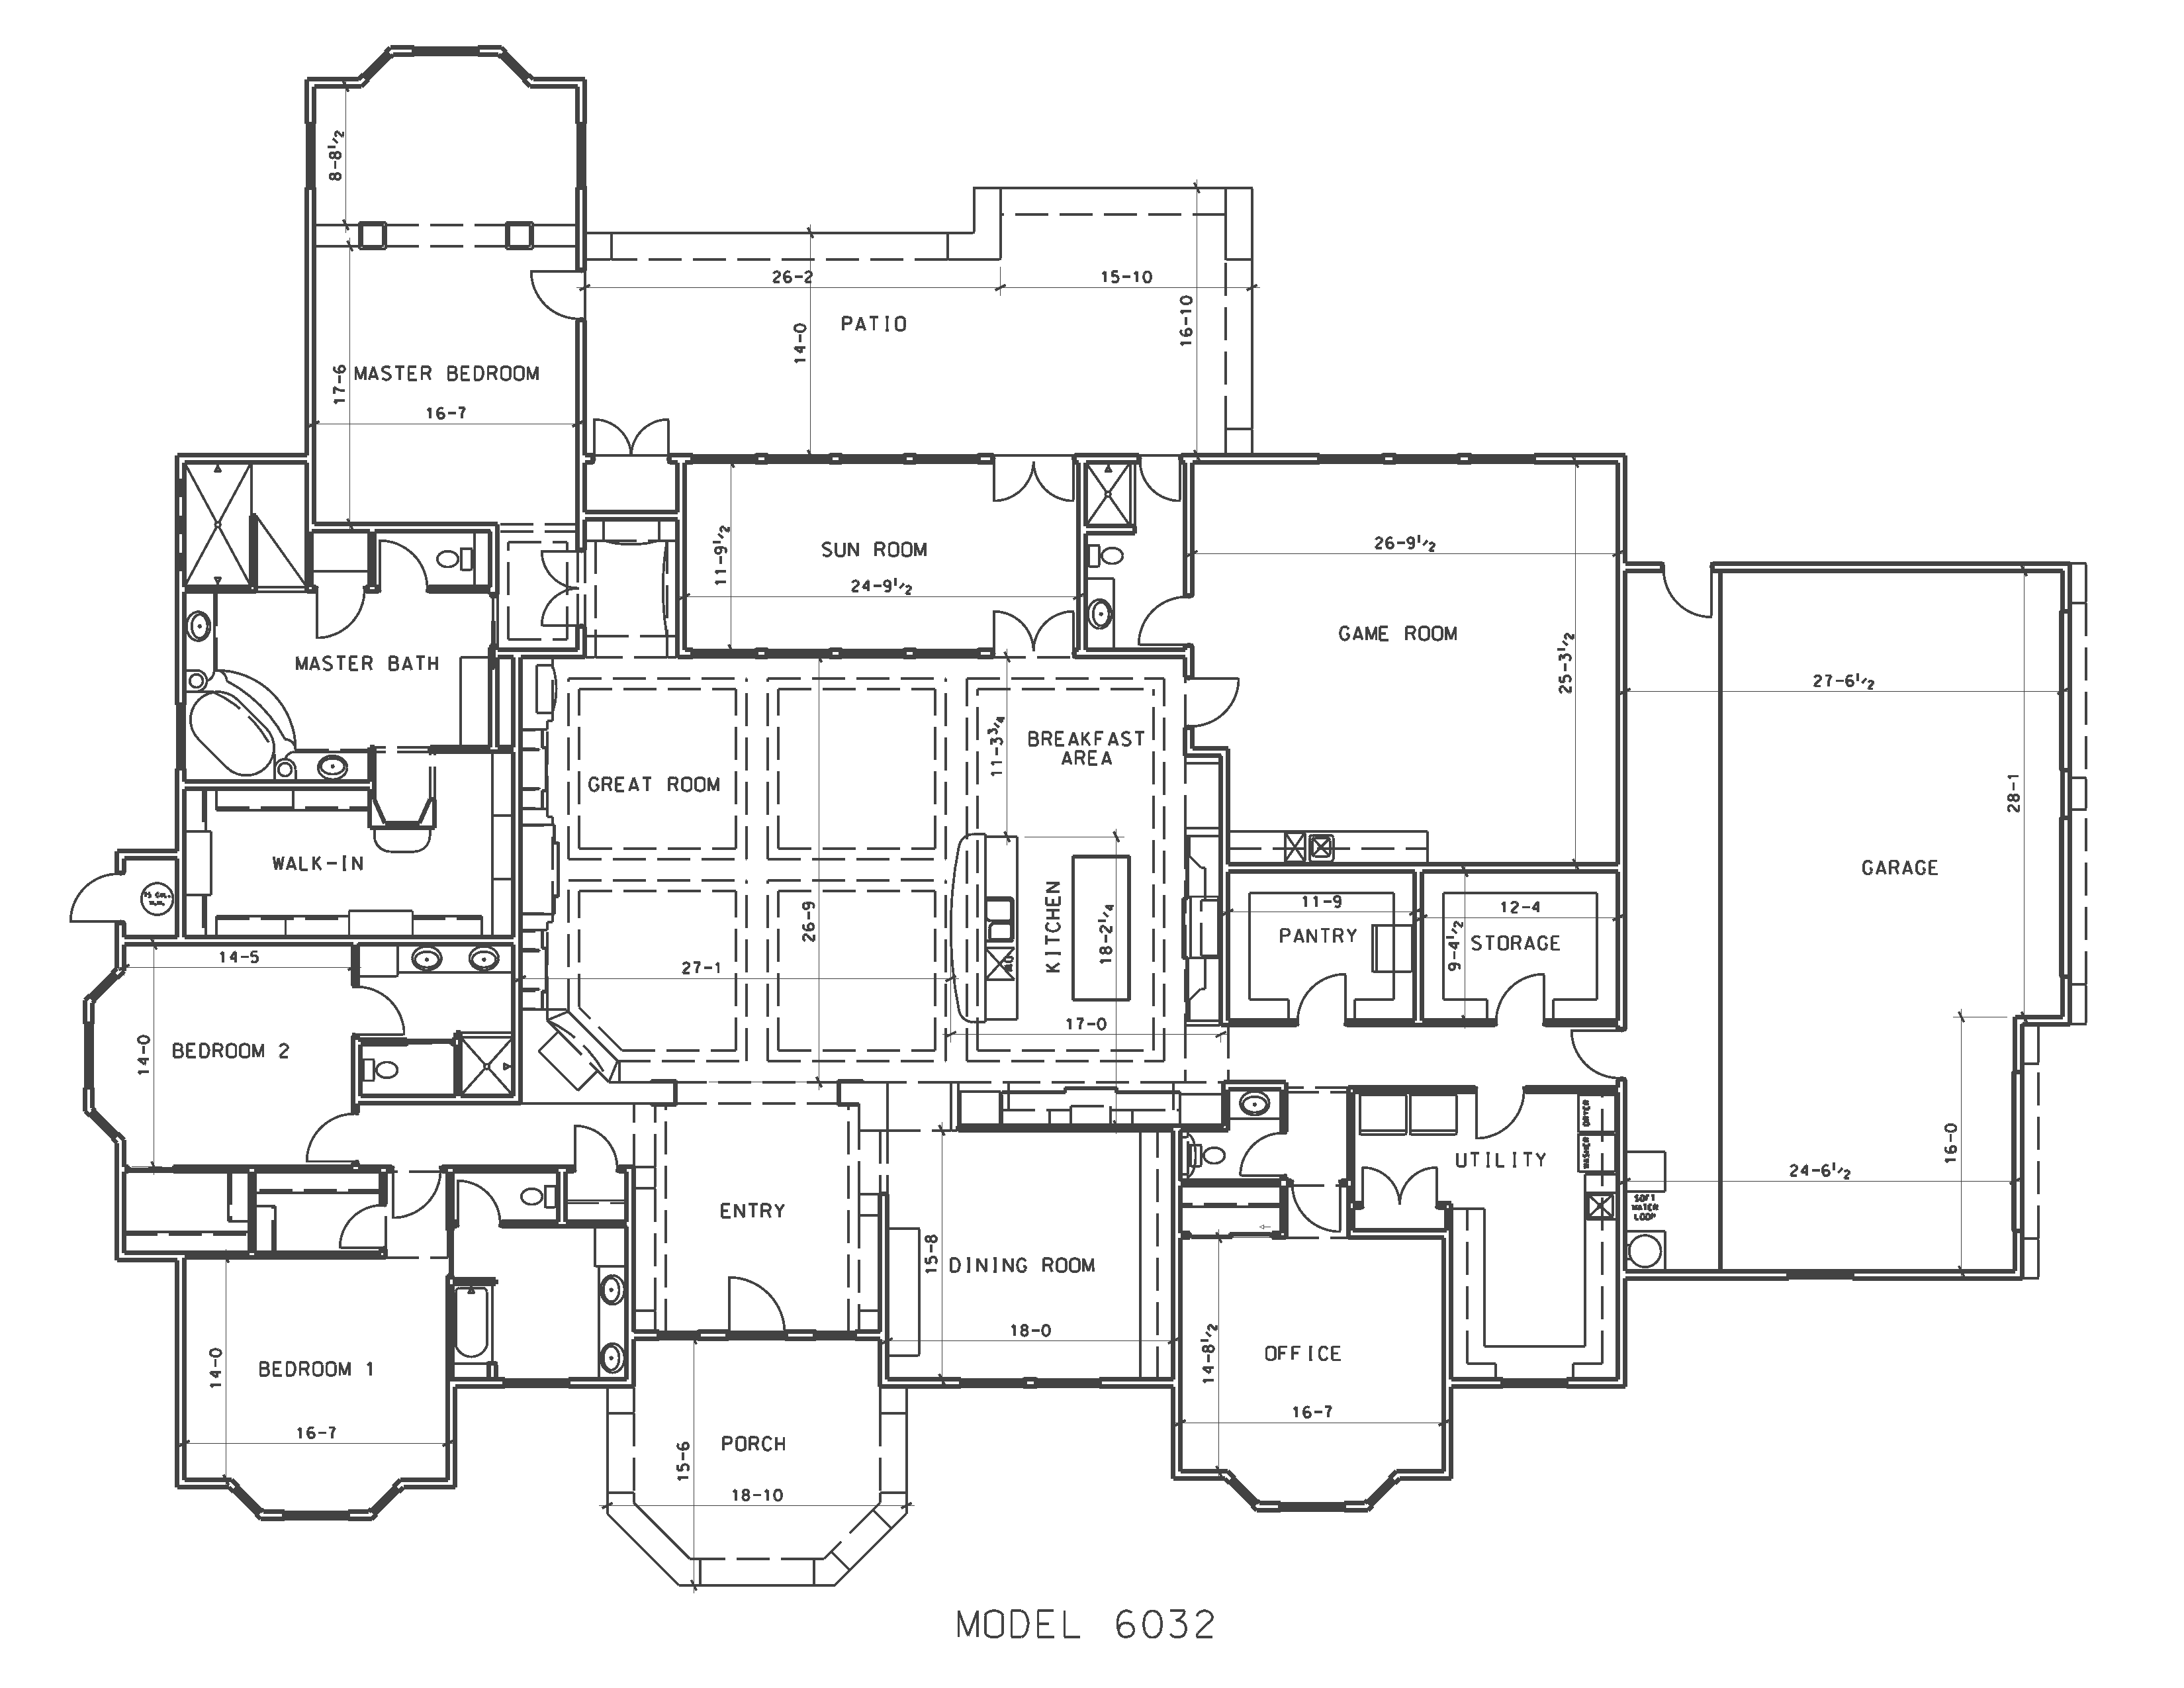 arizona house plans southwest house plans home plans On arizona house plans